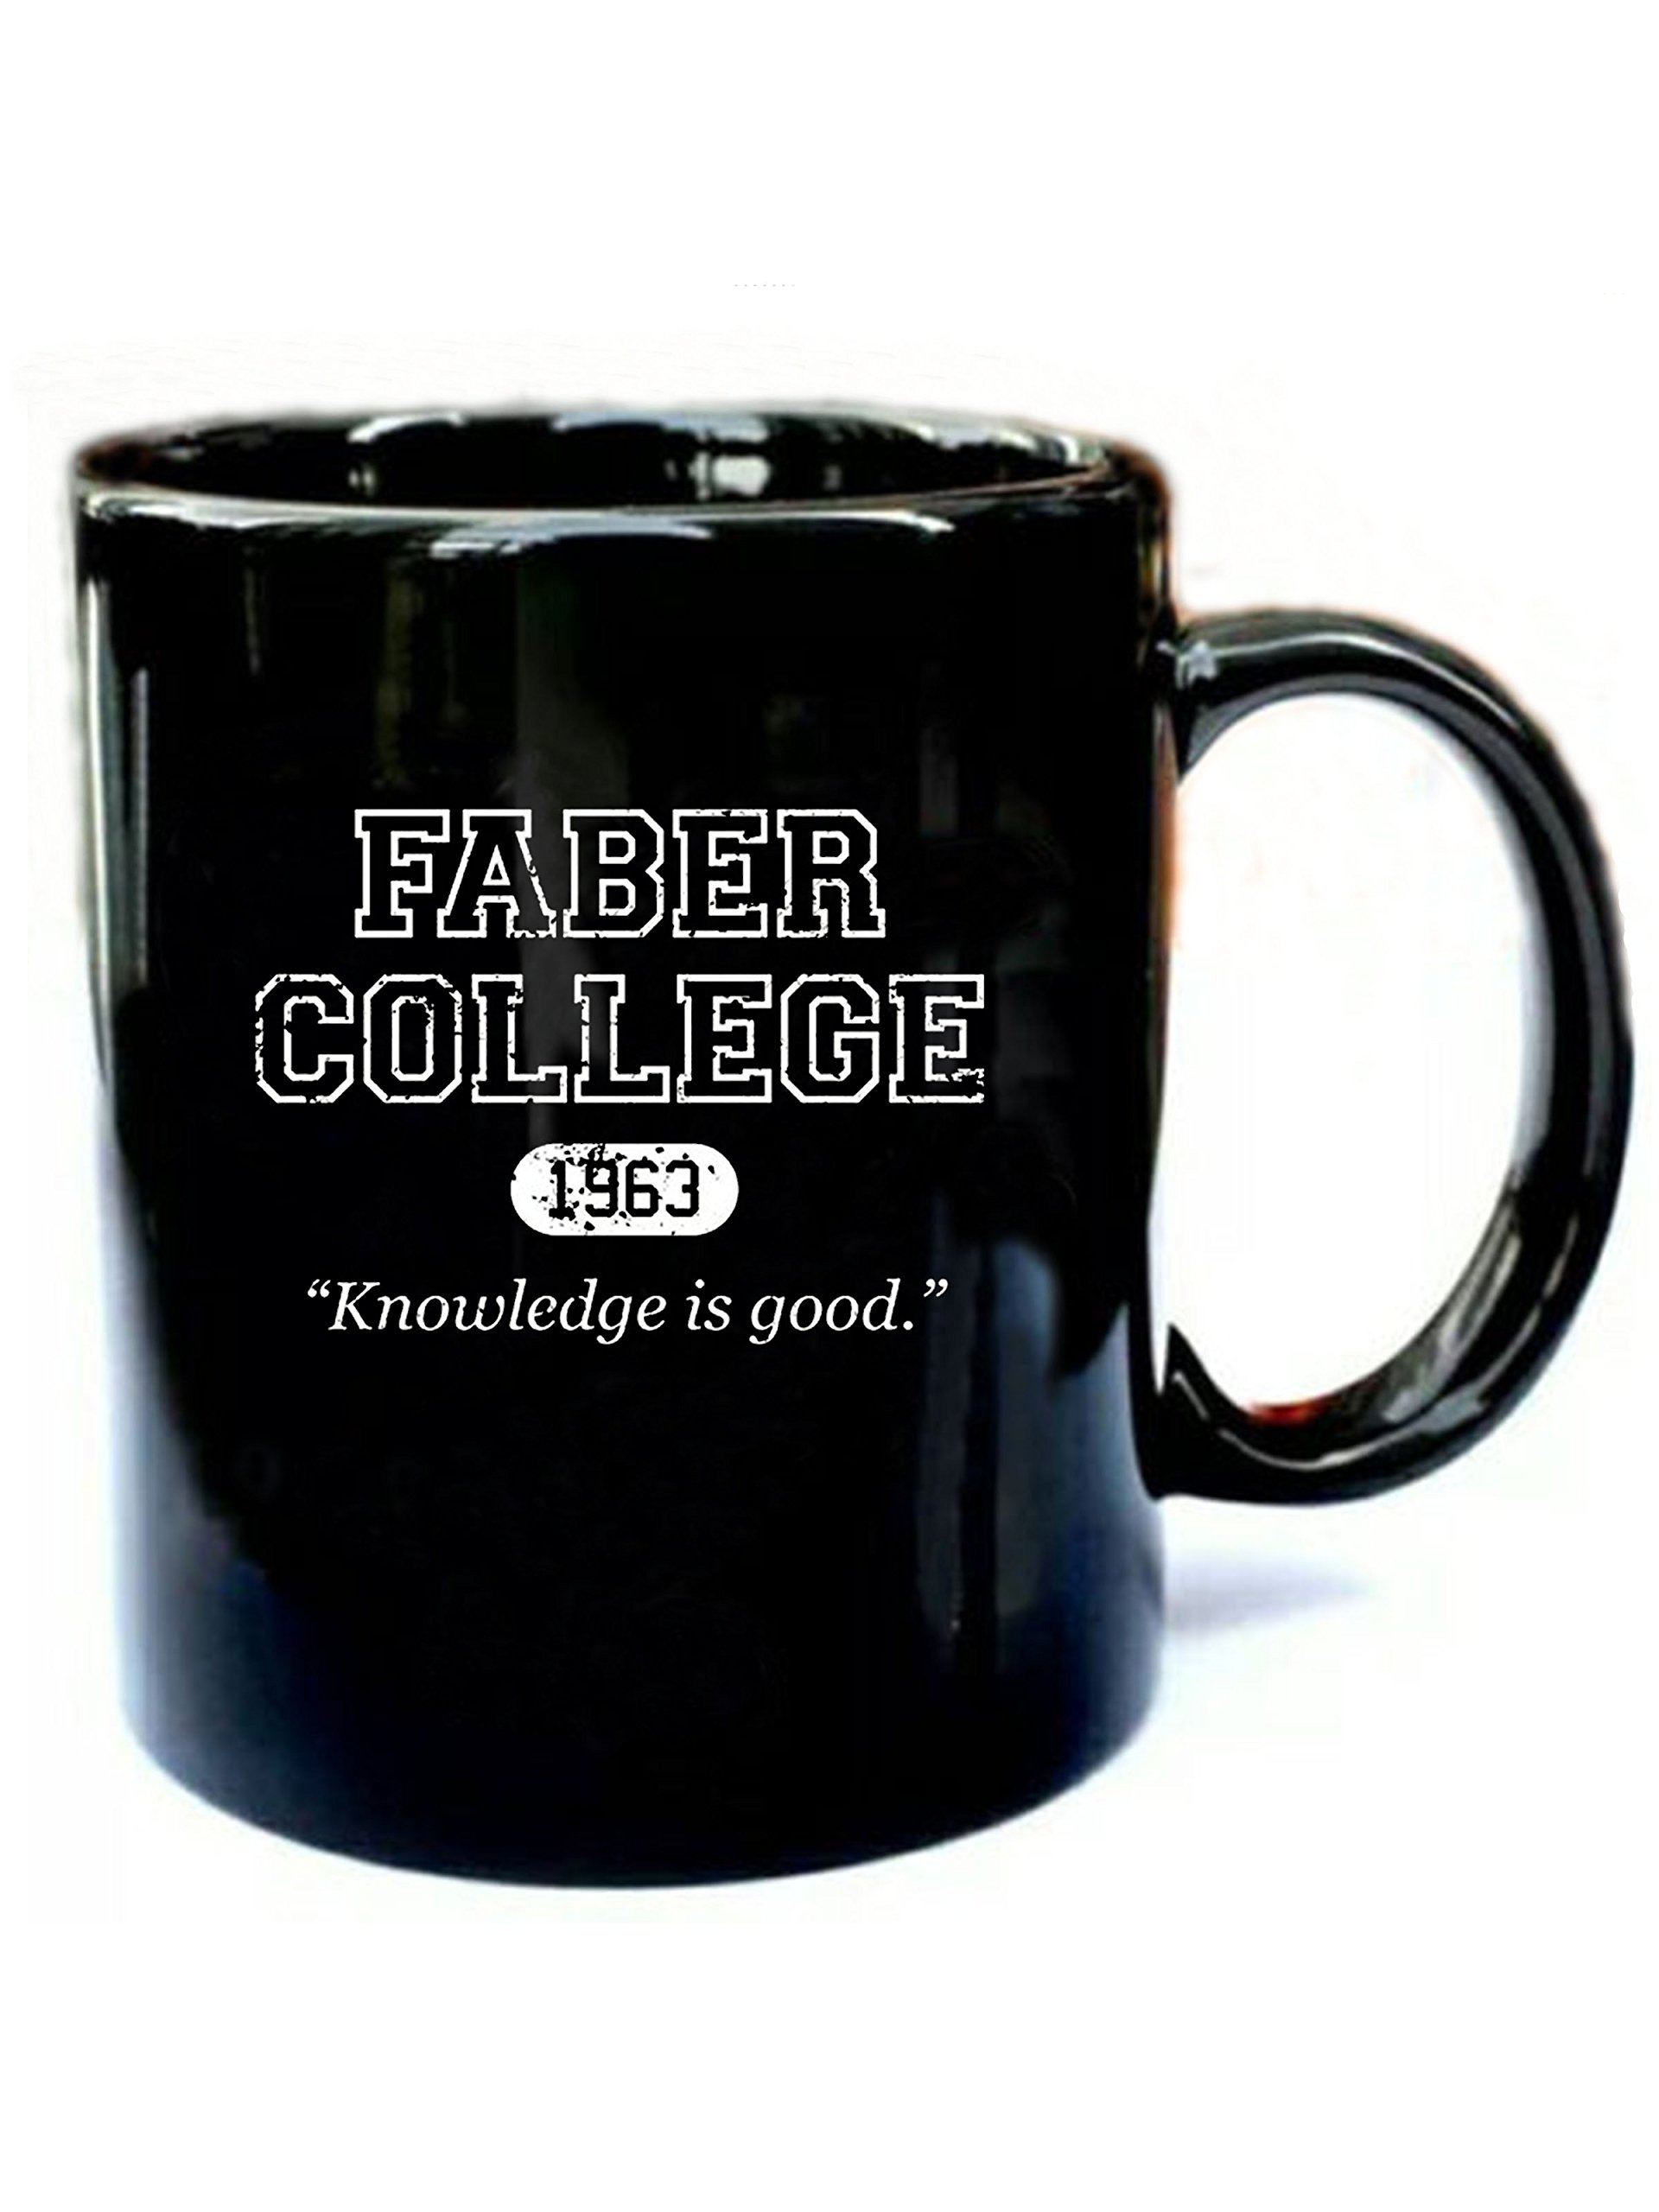 Faber College 1963 Knowledge is Good - Funny Gift Black 11oz Ceramic Coffee Mug